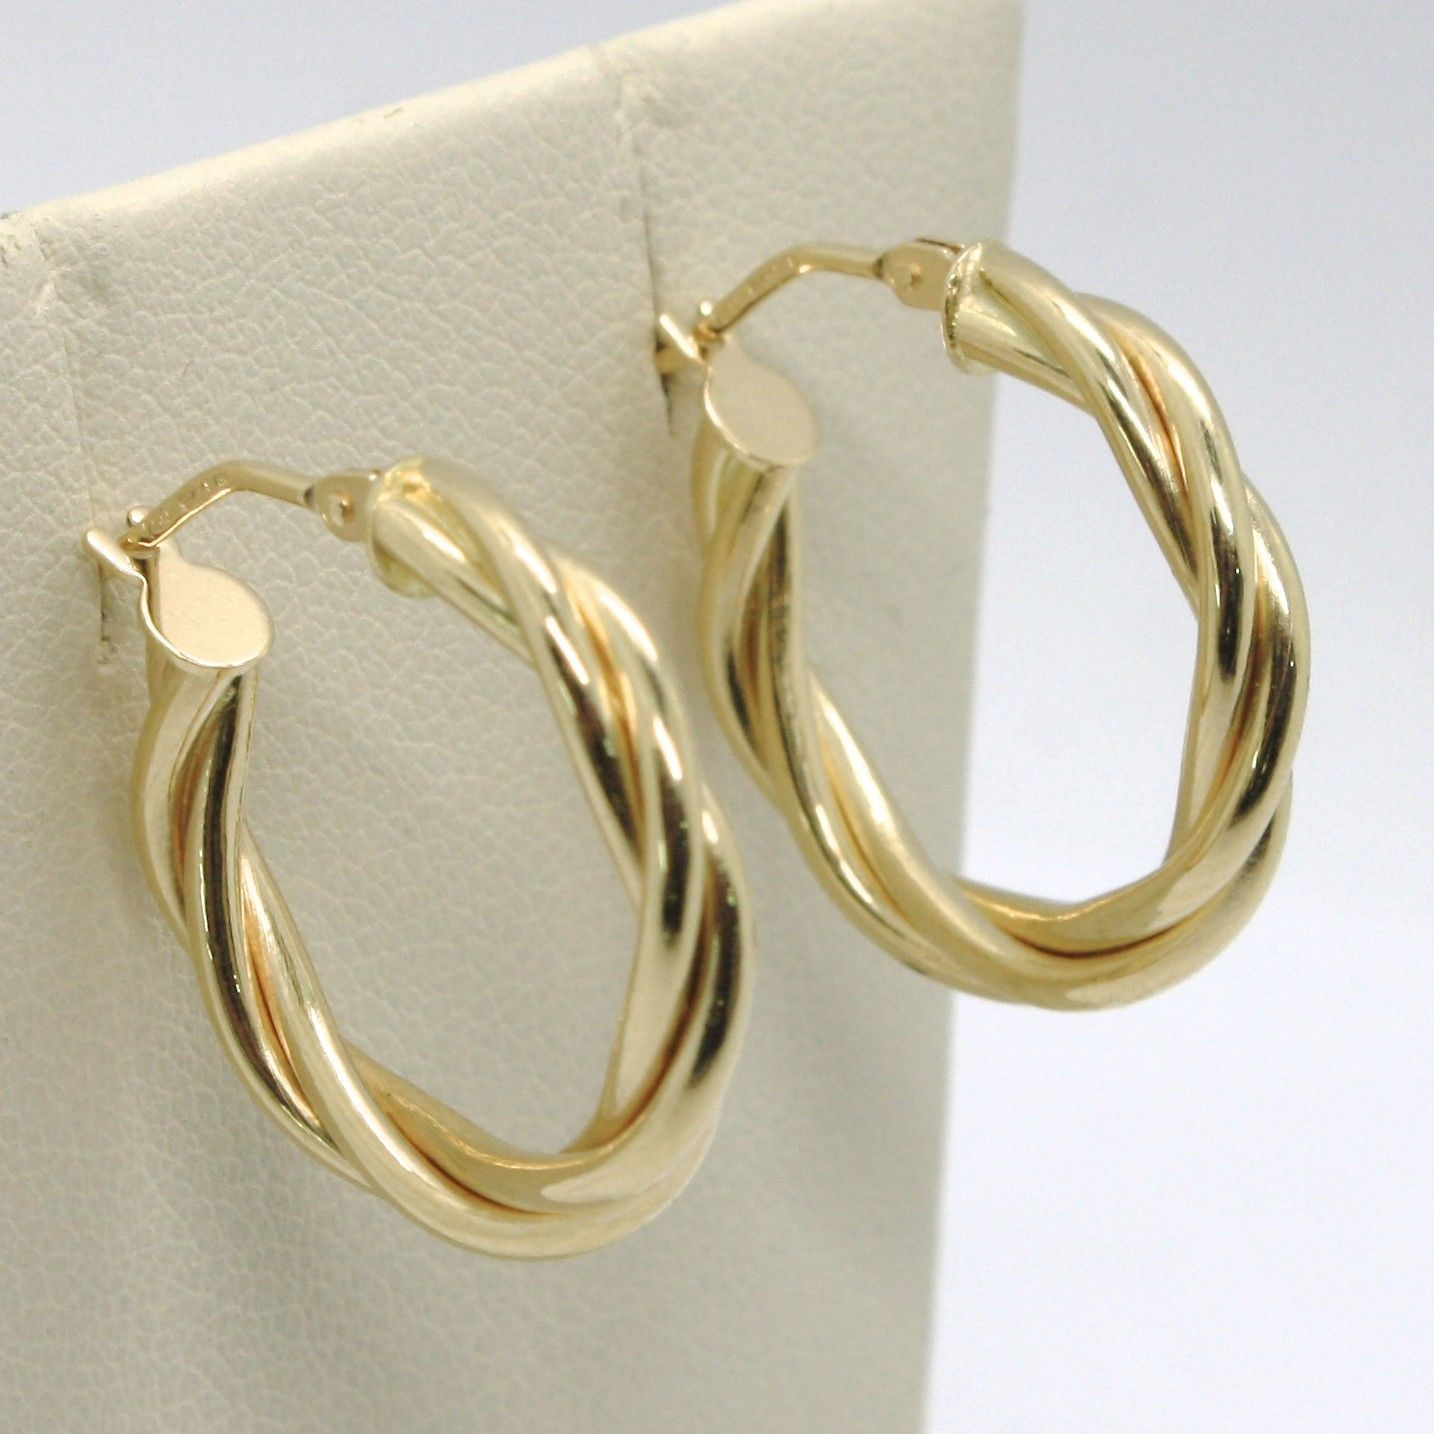 18K YELLOW GOLD CIRCLE HOOPS DOUBLE TUBE TWISTED EARRINGS 22 MM x 3.5 MM, ITALY